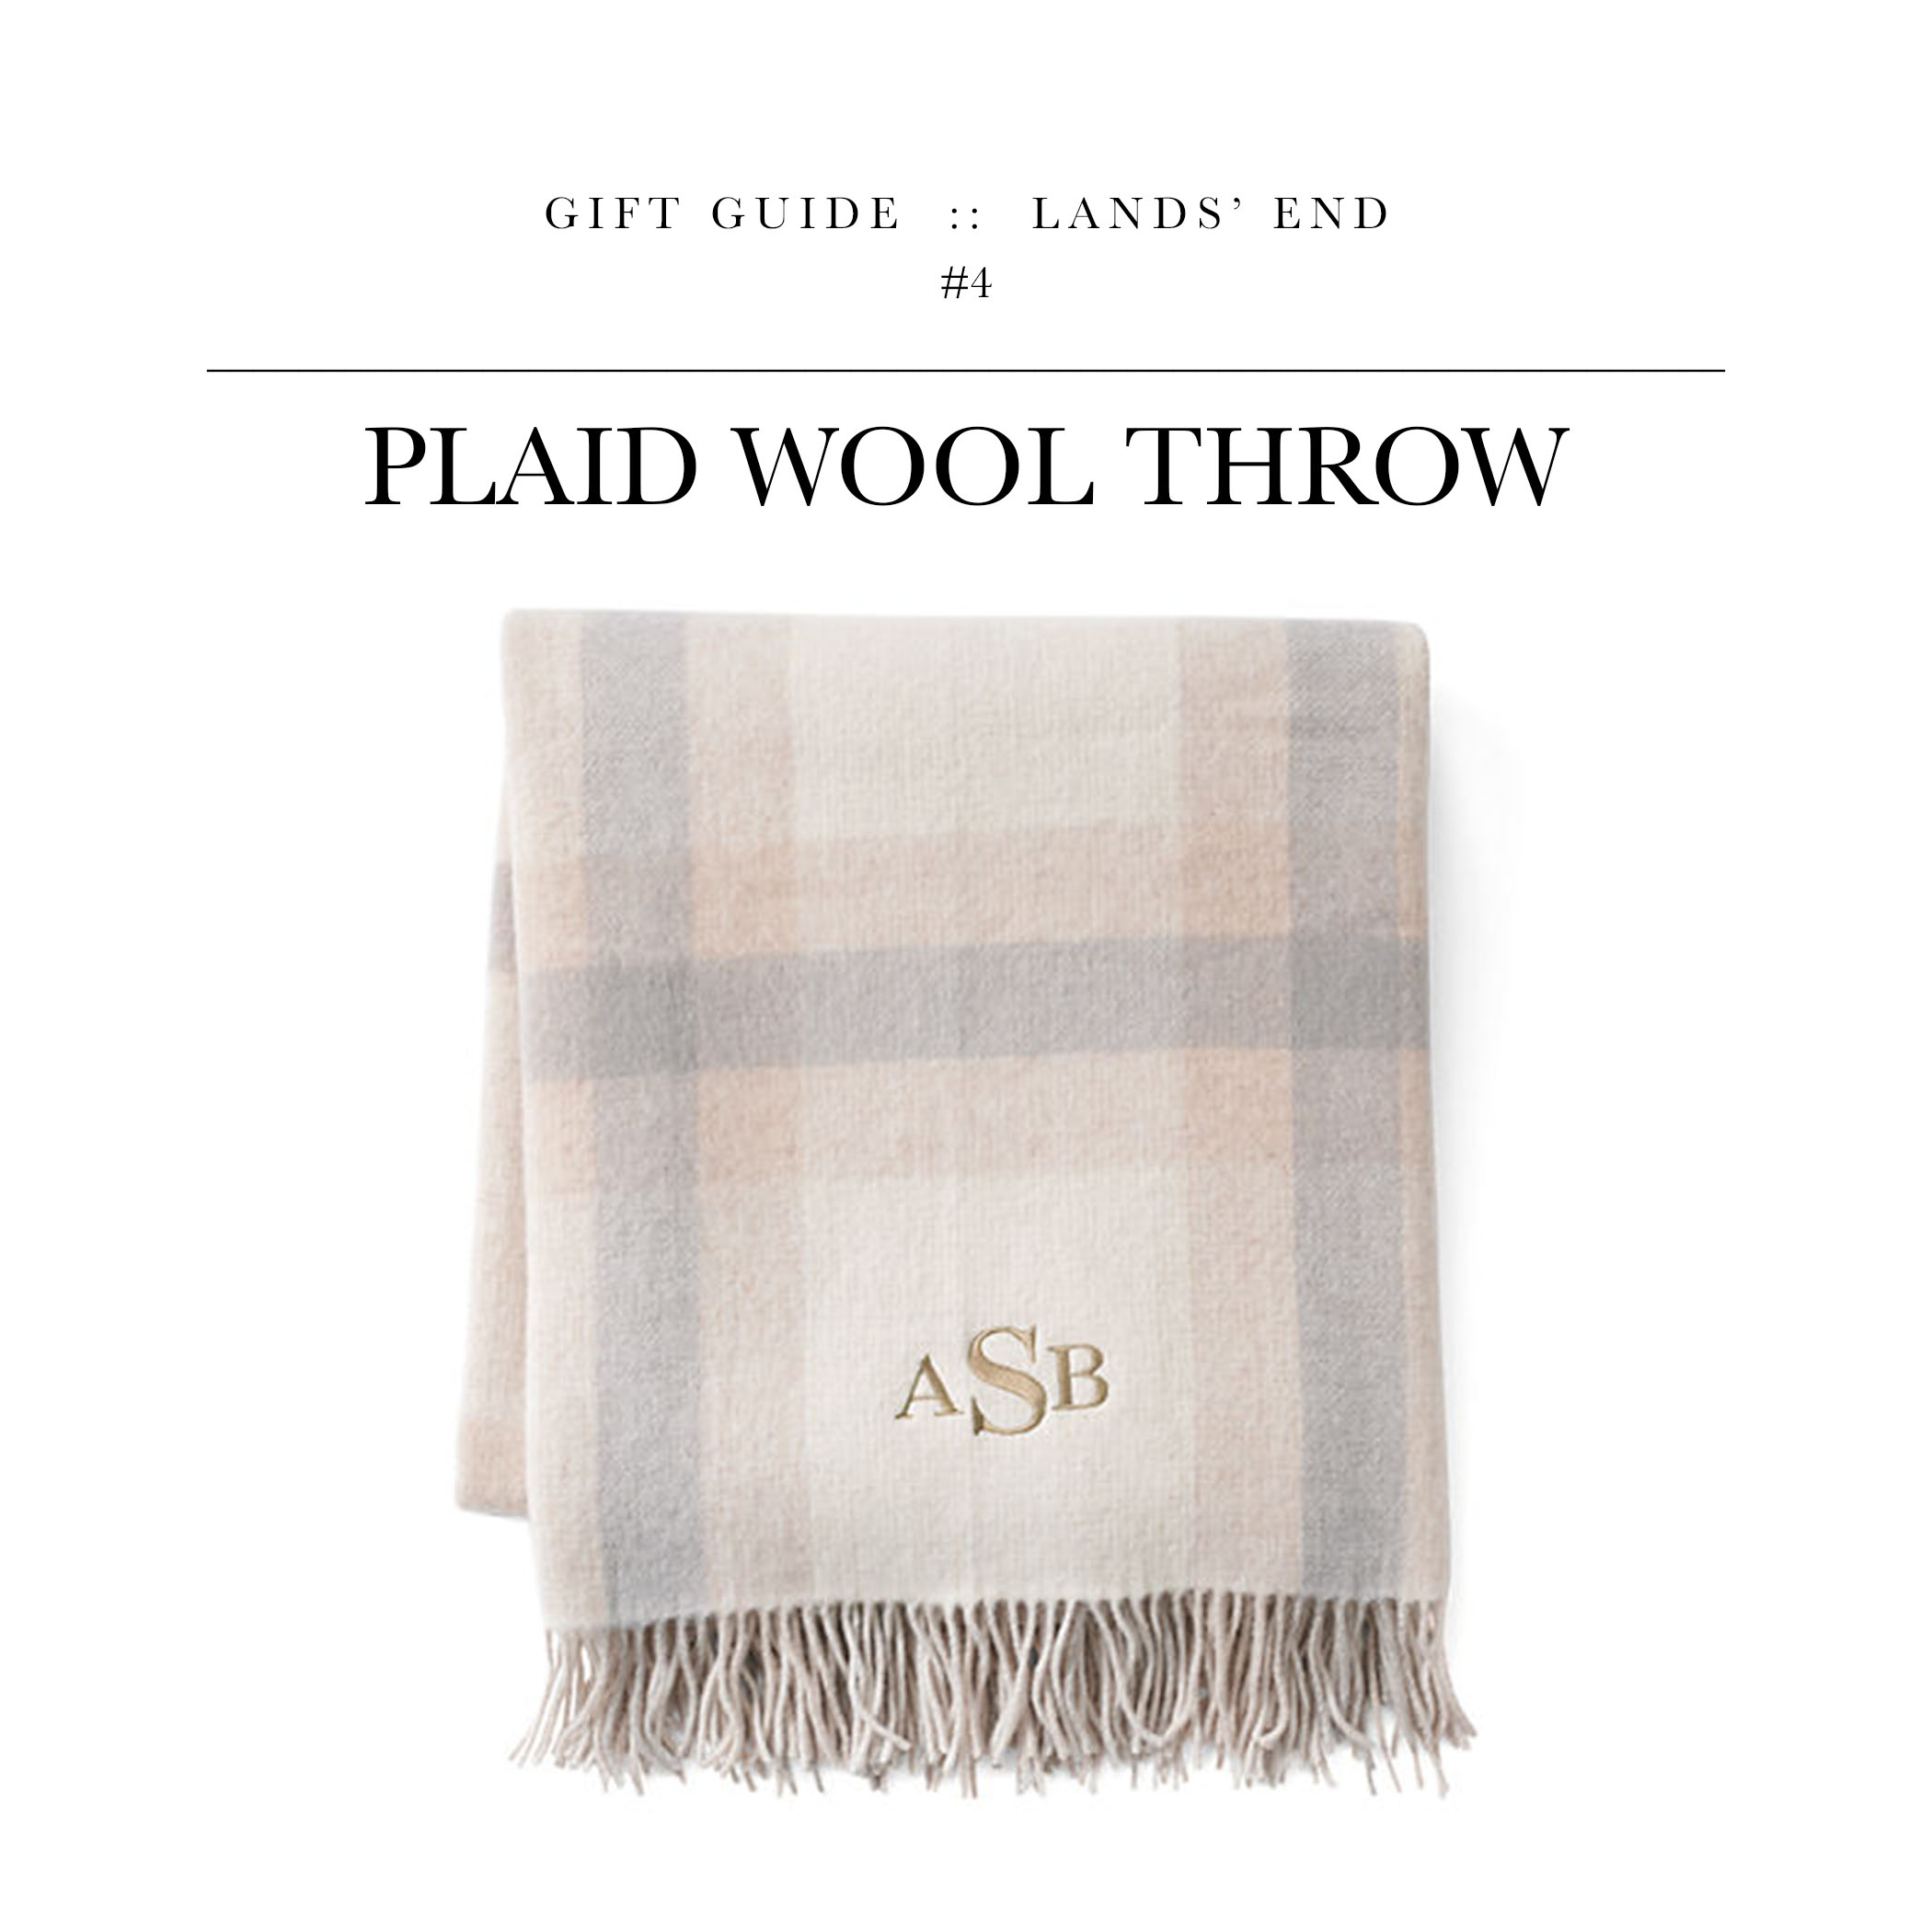 Plaid Wool Throw  via Lands' End // A massive throw perfect for the upcoming winter. If you're going to monogram, I suggest a diamond shape - it's a bit more masculine than the one pictured above.